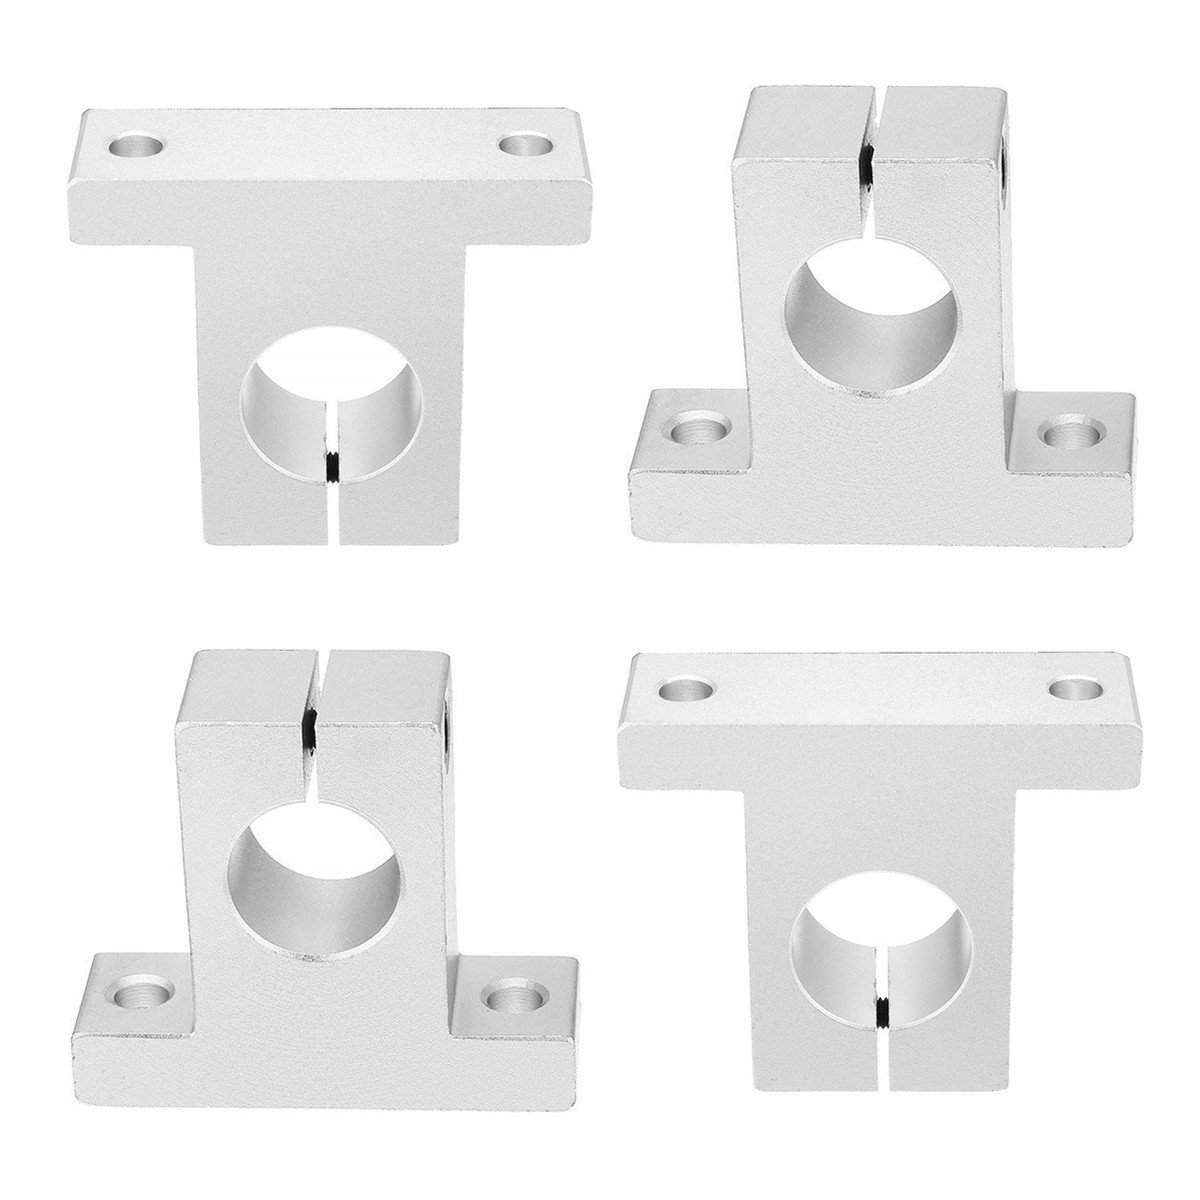 SamIdea Pack of 4,SK20 Aluminum Linear Motion Rail Clamping Guide Support for 20mm Dia Shaft